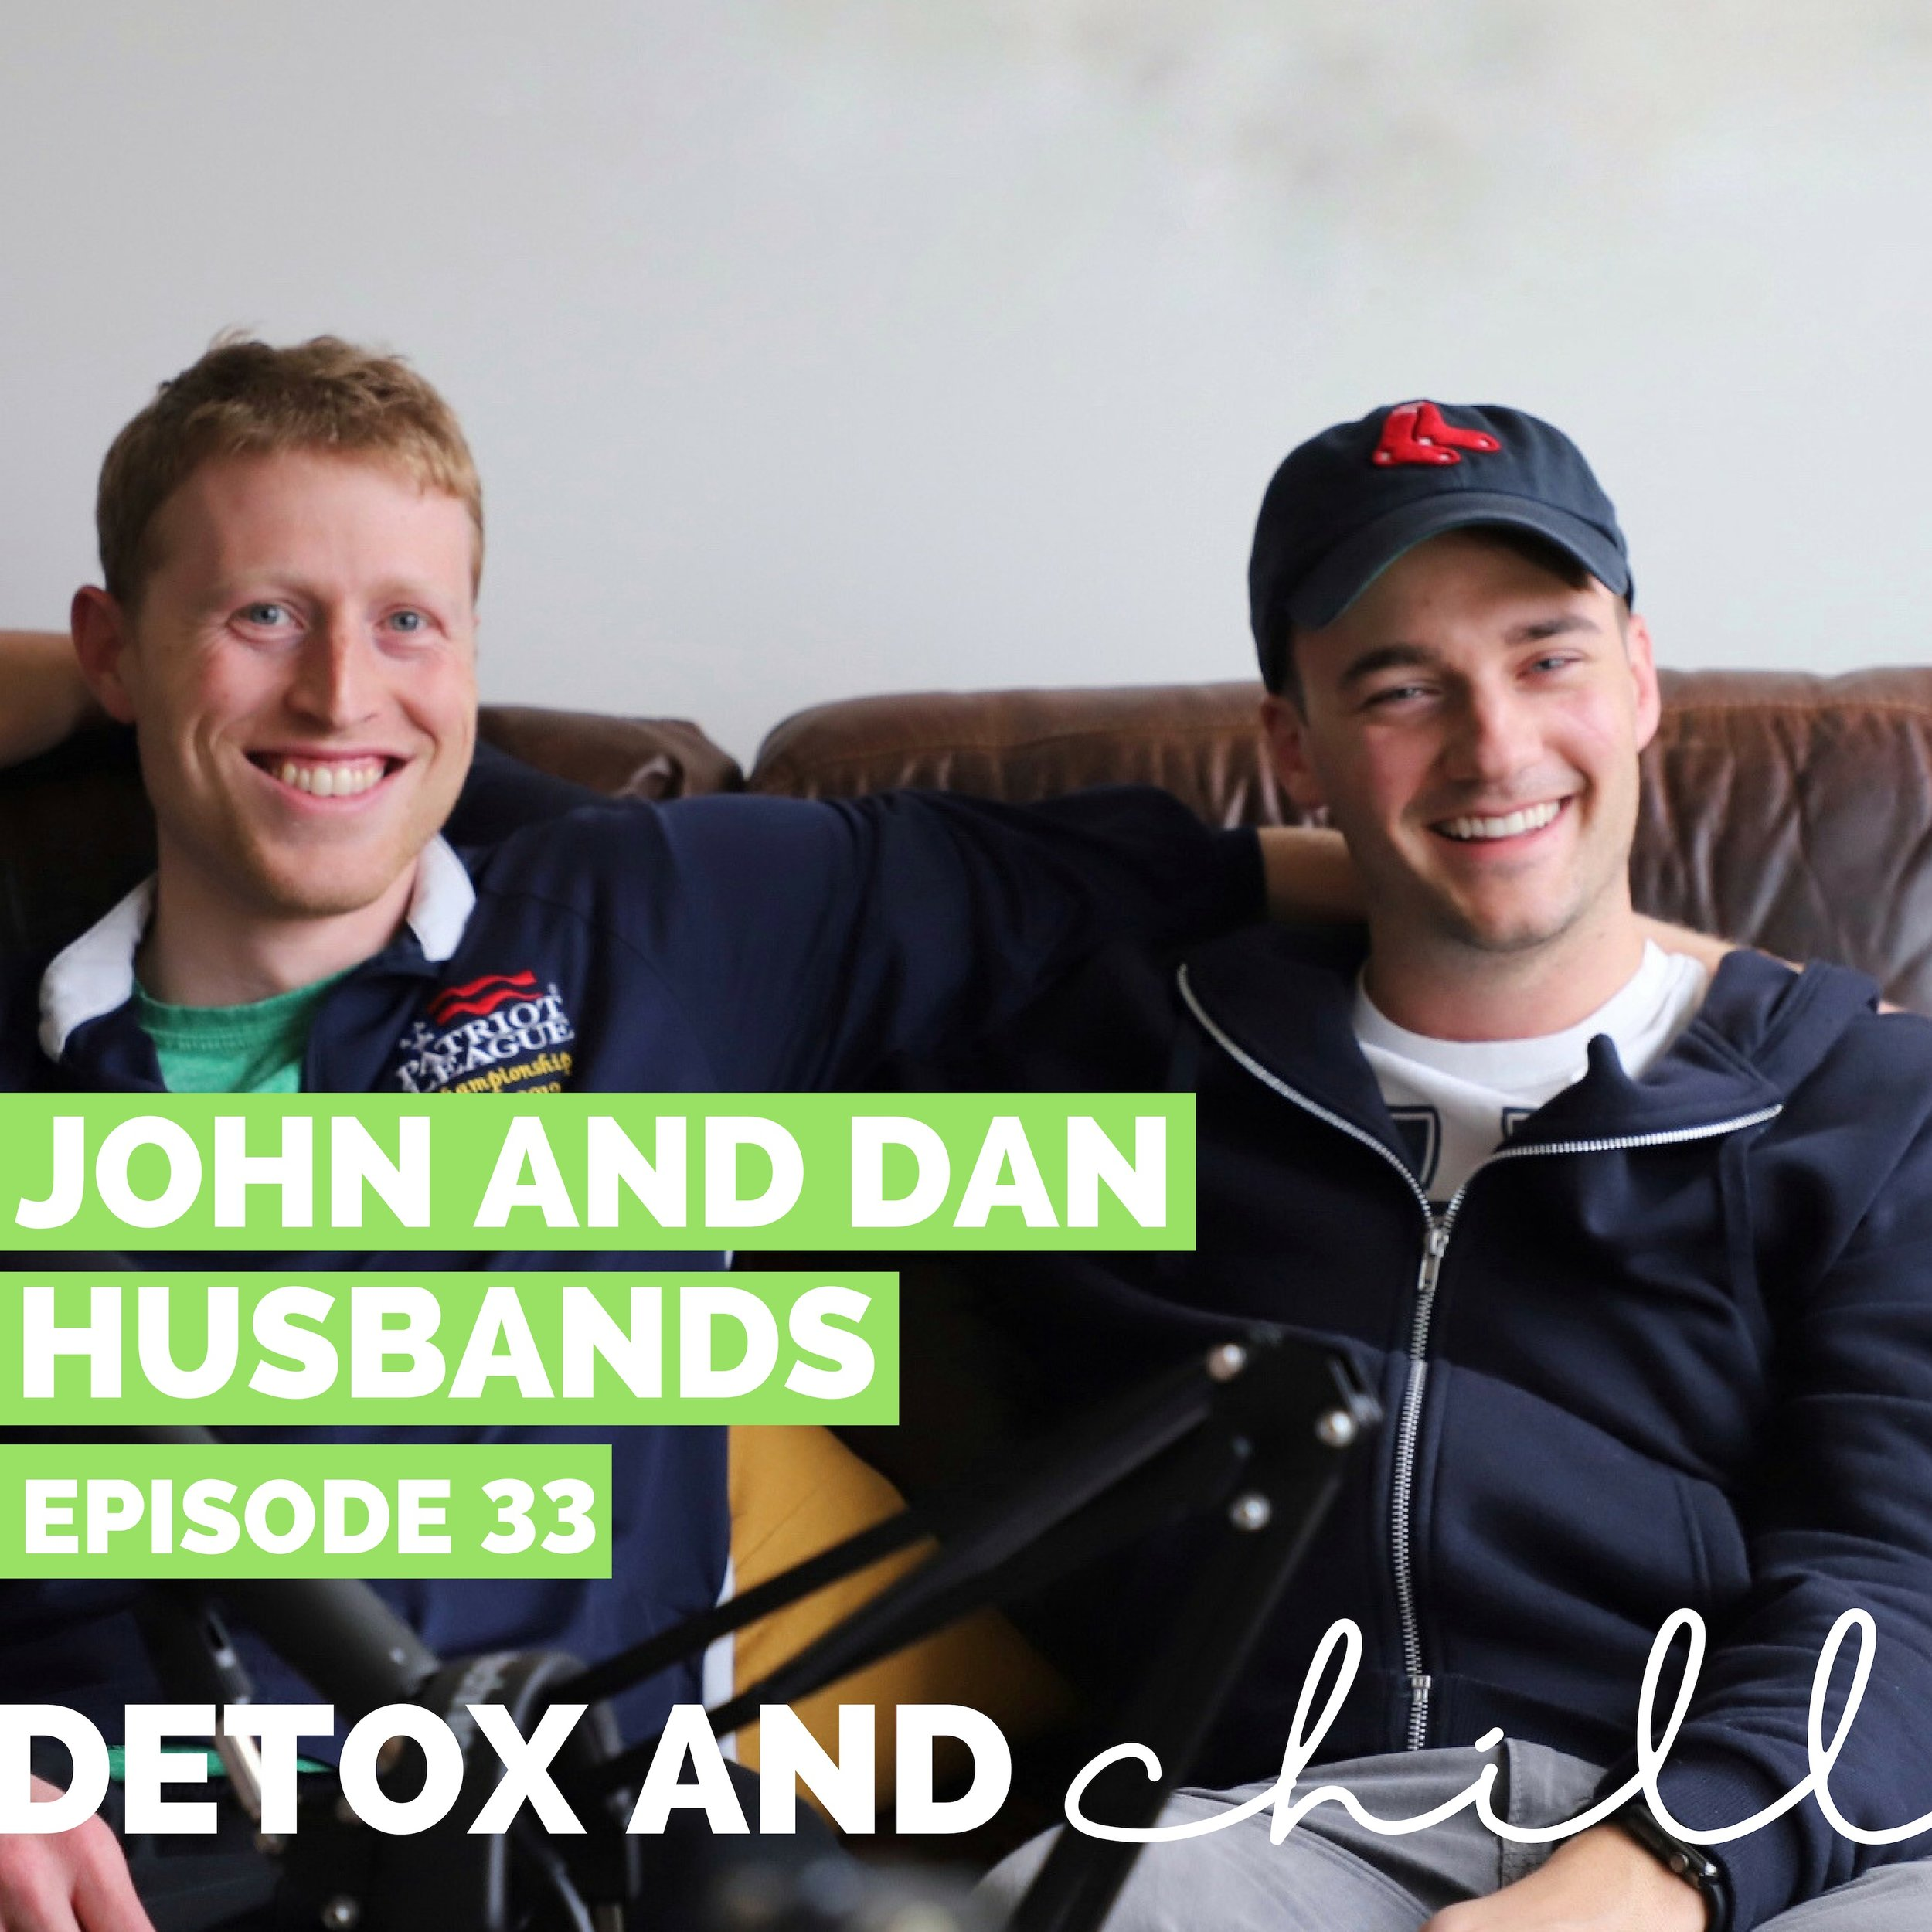 Episode #33: John & Dan // Husbands of Detox & Chill - The Husbands episode part TWO is brought to you by our amazing...husbands. We are so grateful that these busy guys took the time to record ANOTHER episode with us - on a weekend - and be really open about marriage and relationships and topics that are typically taboo.We're trying to bring more honest marriage conversations to the forefront - because while it's not always sunshine and rainbows, there are things you work through and come out on the other side for the better.In this episode we talk about things like marriage, sex, and staying friends with exes. It gets juicy.We are so excited to hear what you think - let's start normalizing these conversations together. We'd love to continue this conversation in our Facebook group and on Instagram. Our Facebook group is a safe space for anyone who joins, so don't forget to check us out there. Just search *SUPER EXLUSIVE* Detox & Chill Podcast Group. As always, don't forget to follow along with us on Instagram (@detoxandchillpodcast) and join our Facebook group. We love you!Follow John hereFollow Dan hereHave a wonderful day!Xoxo,Meg & Beck